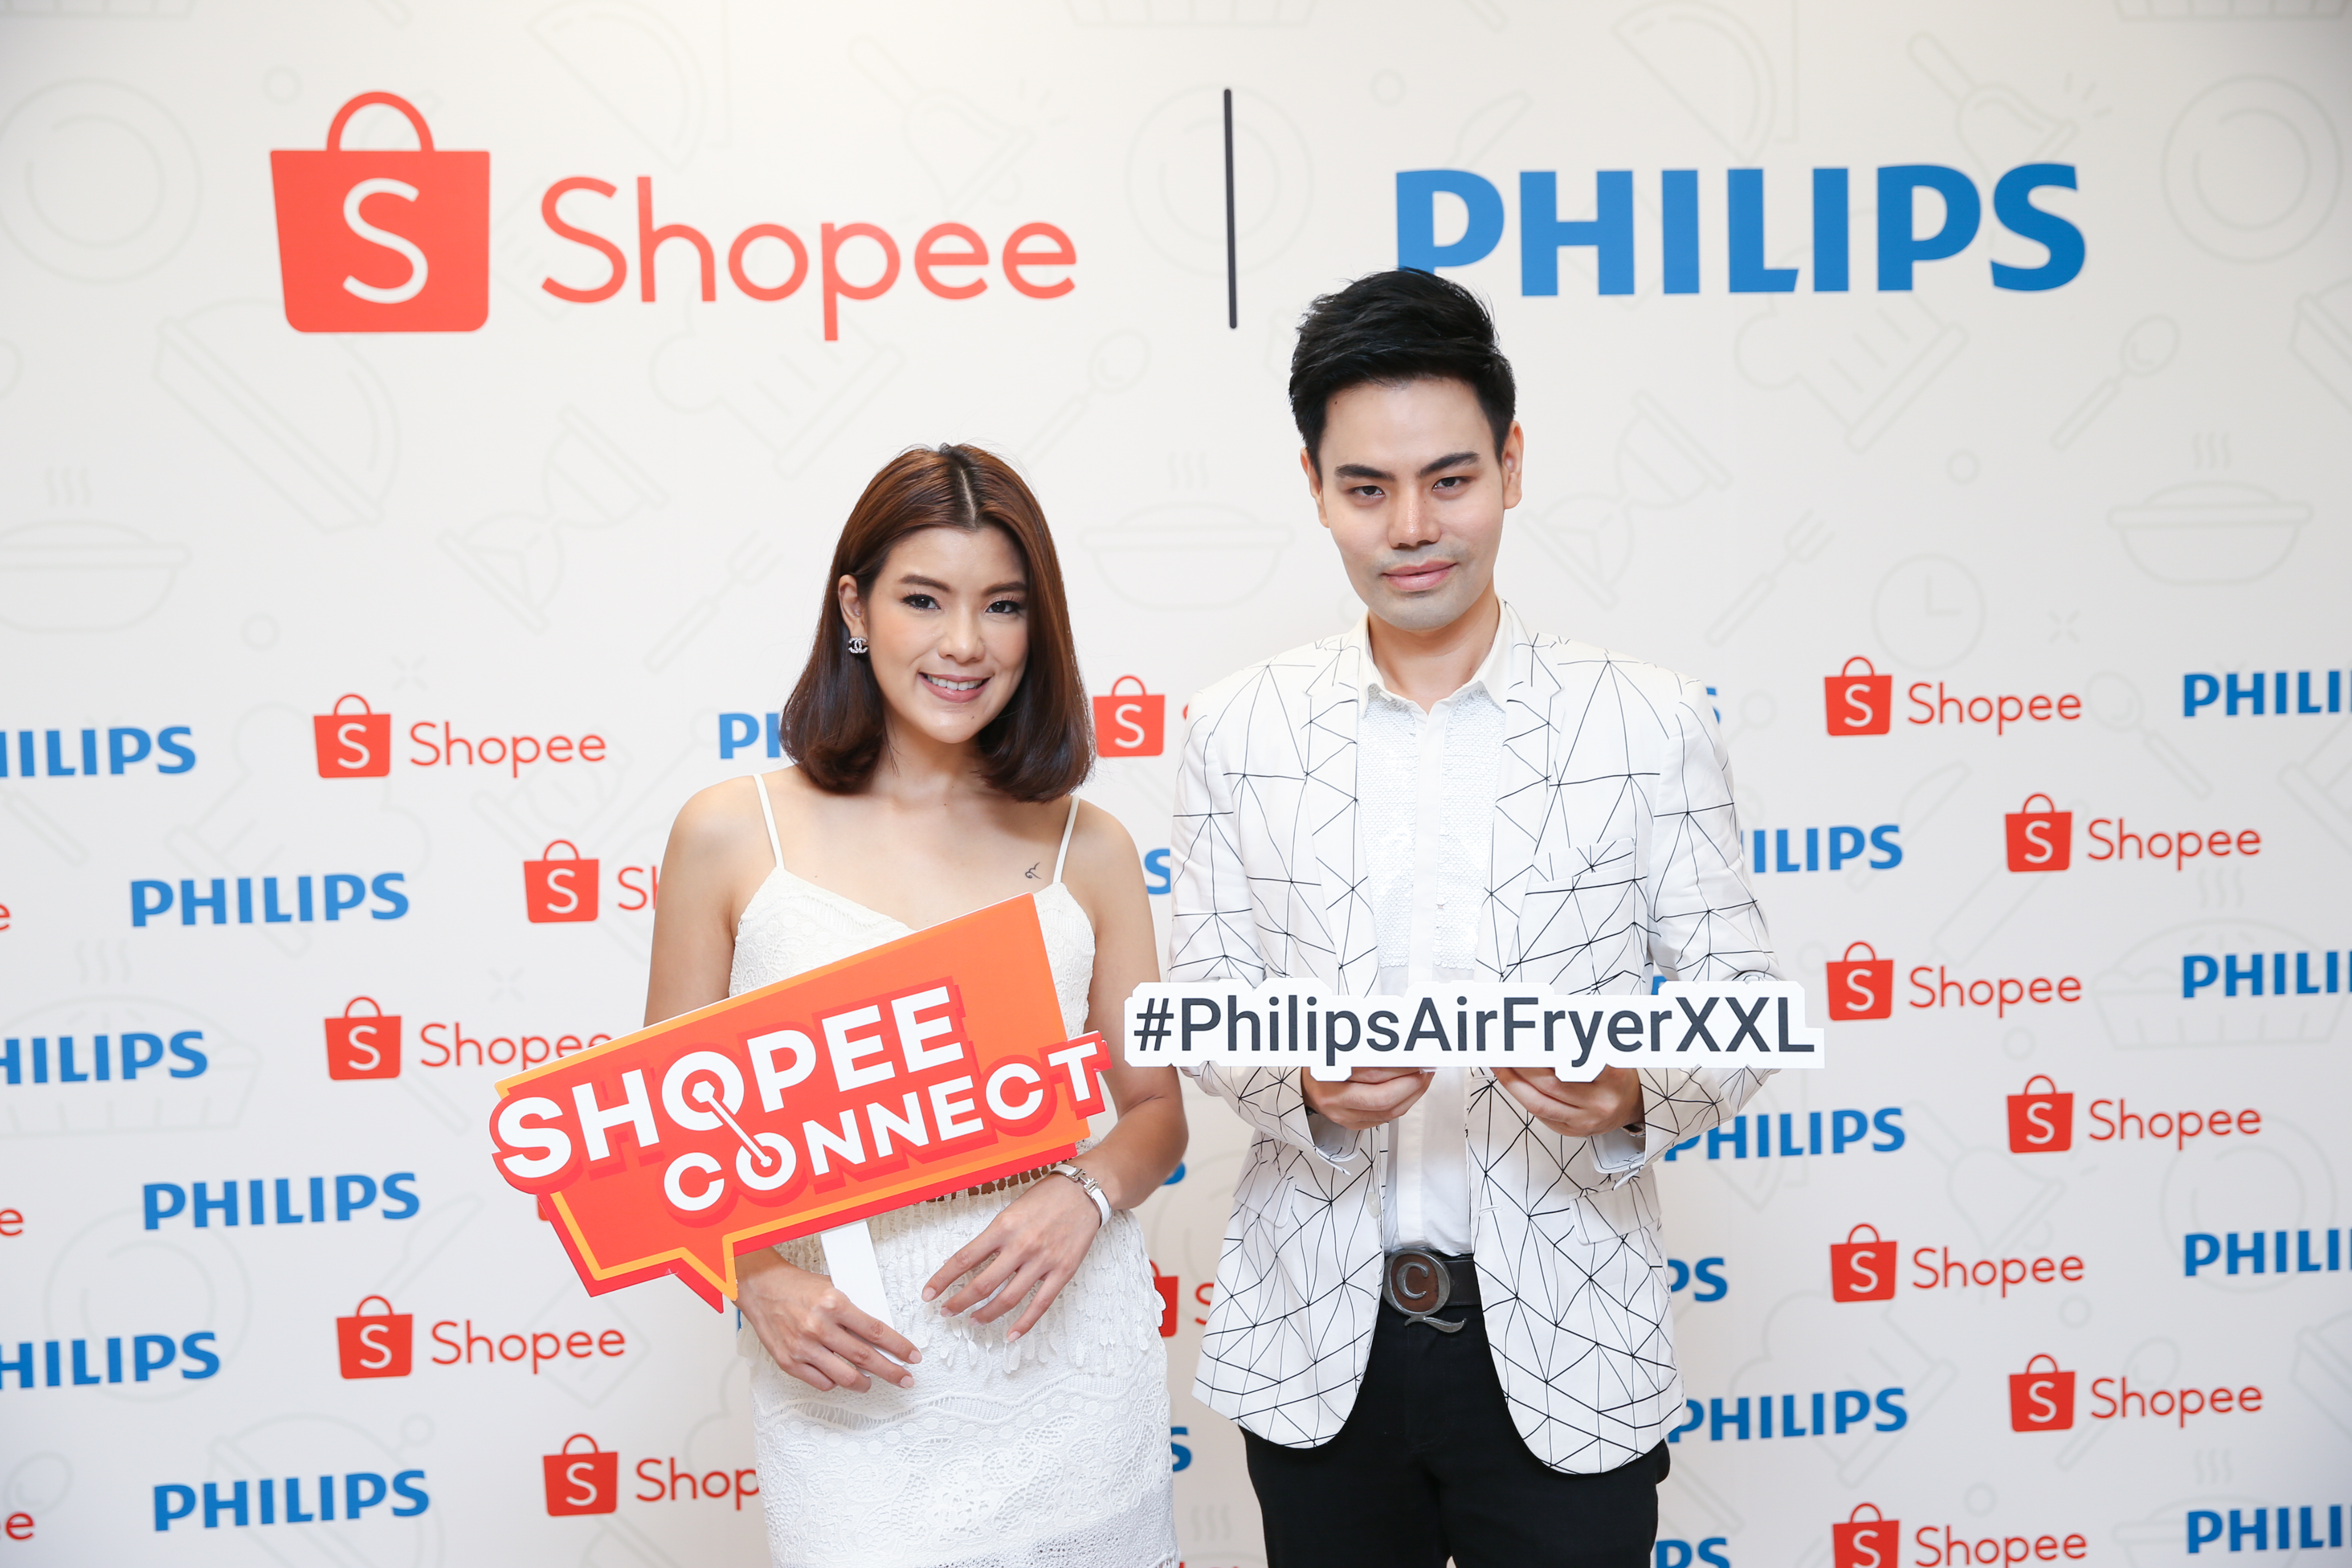 Shopee Connect X Philips